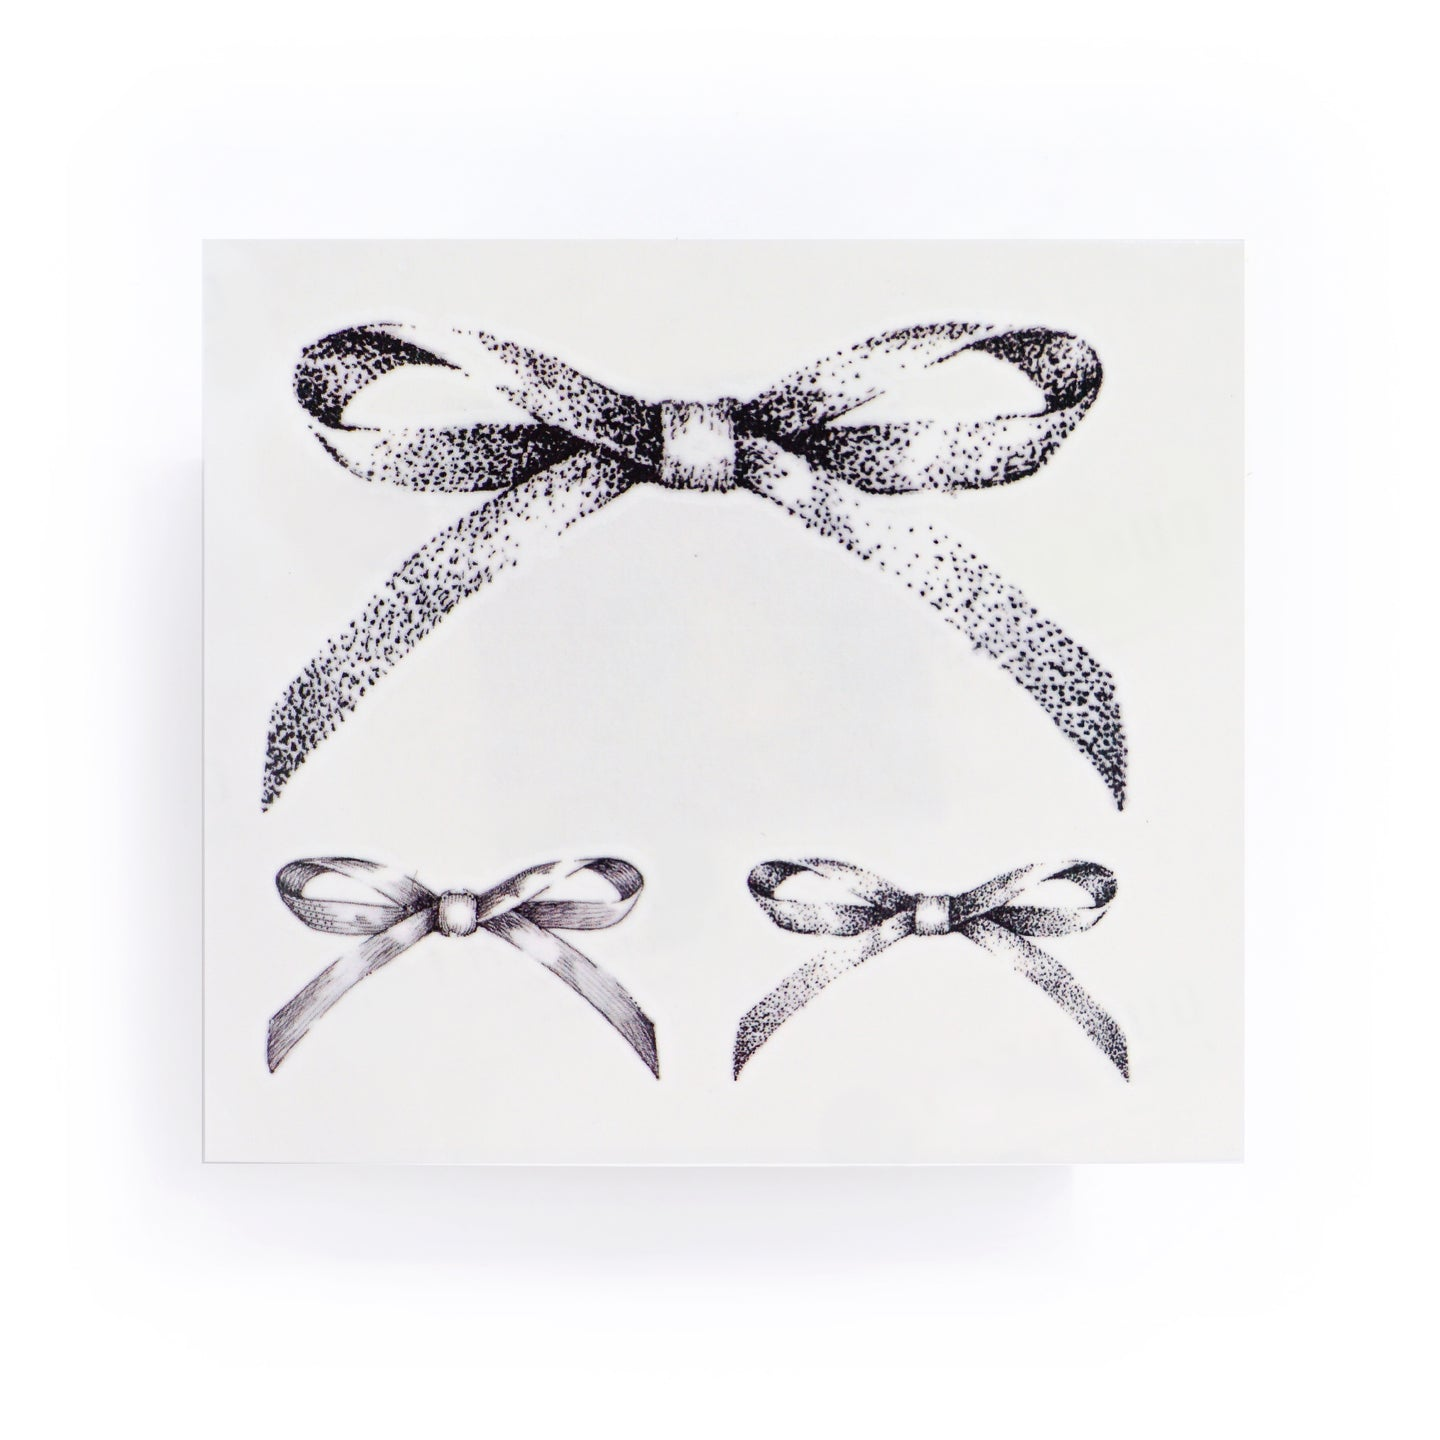 Dotwork Ribbon Bow Tattoo - LAZY DUO TATTOO